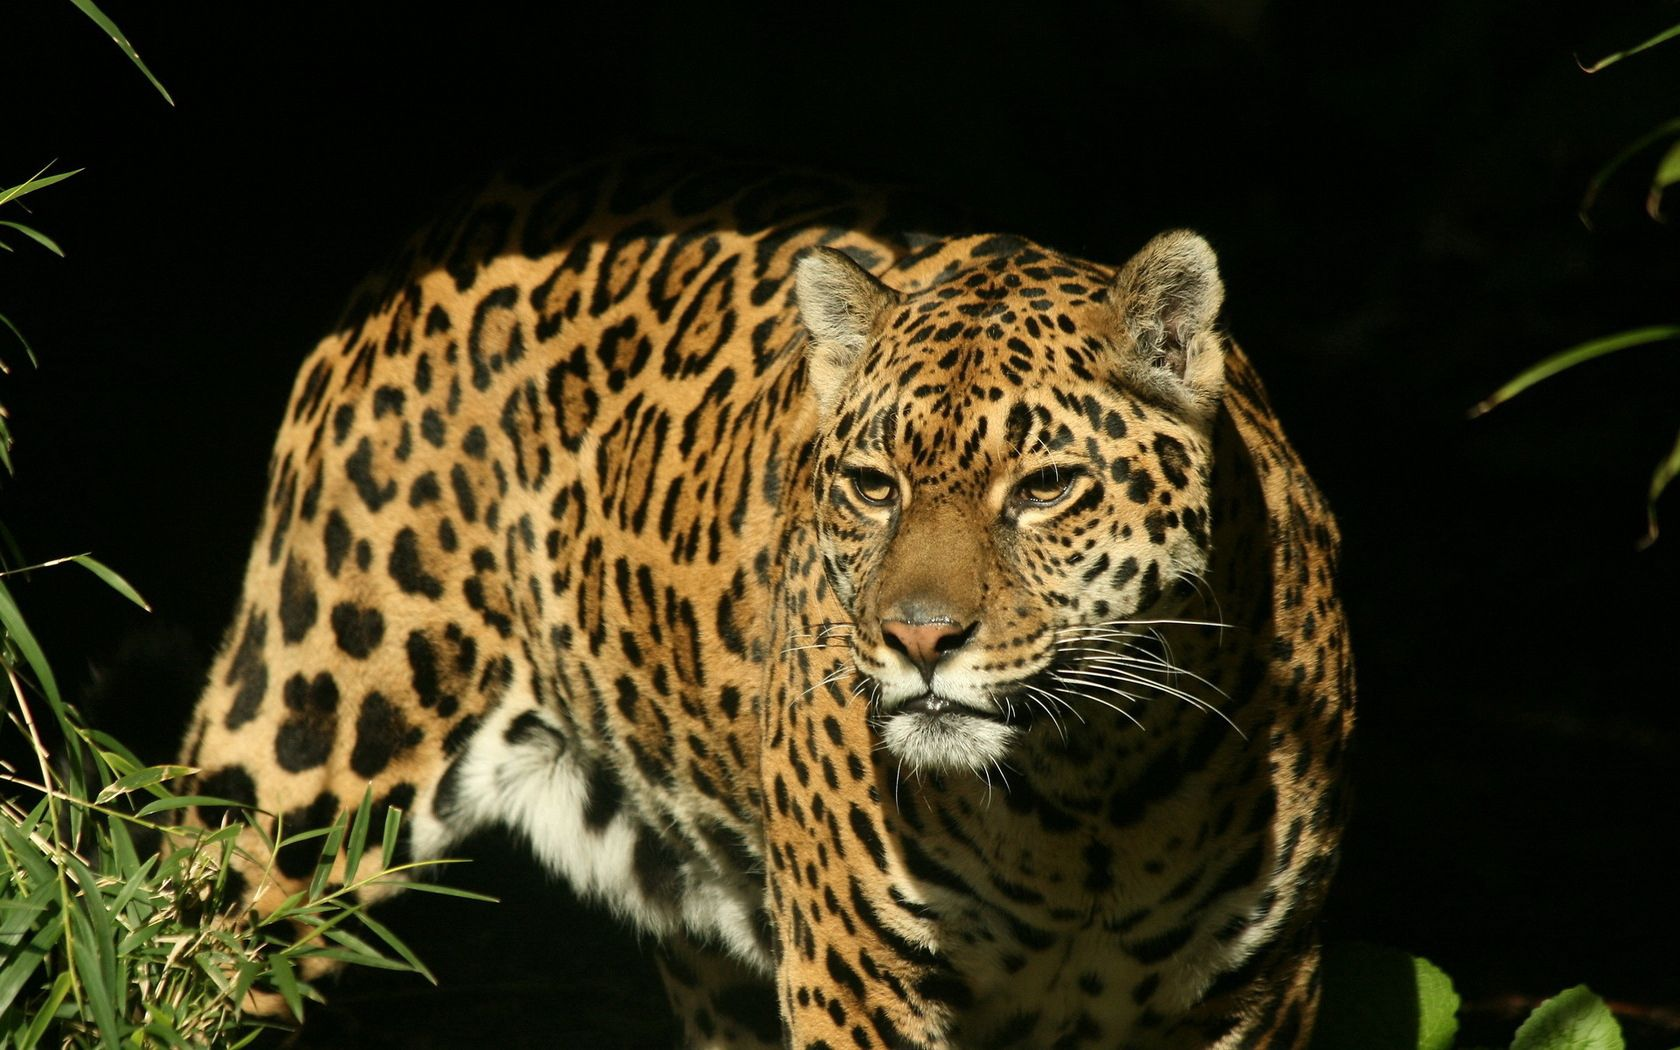 143453 download wallpaper Animals, Jaguar, Big Cat, Spotted, Spotty, Hunting, Hunt, Predator screensavers and pictures for free